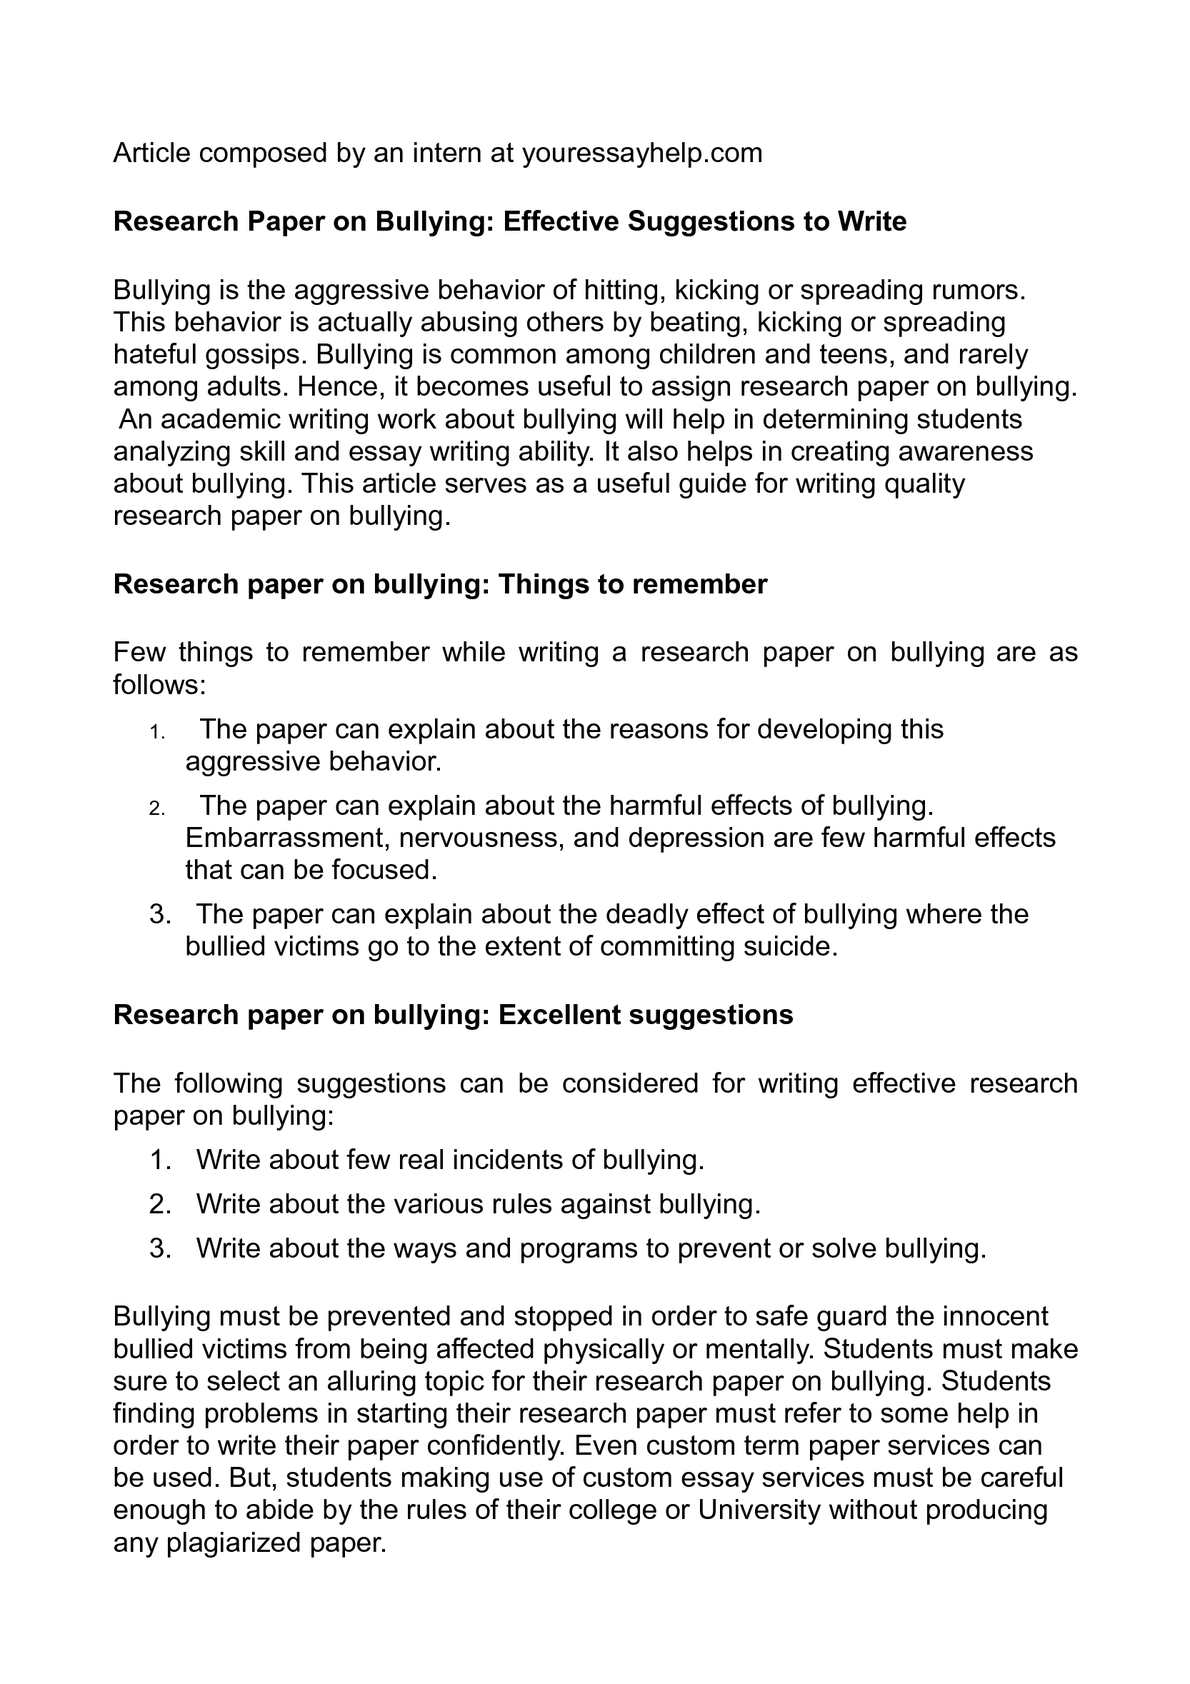 002 Researchs About Bullying P1 Stunning Research Papers Articles On Pdf Paper Cyberbullying Full